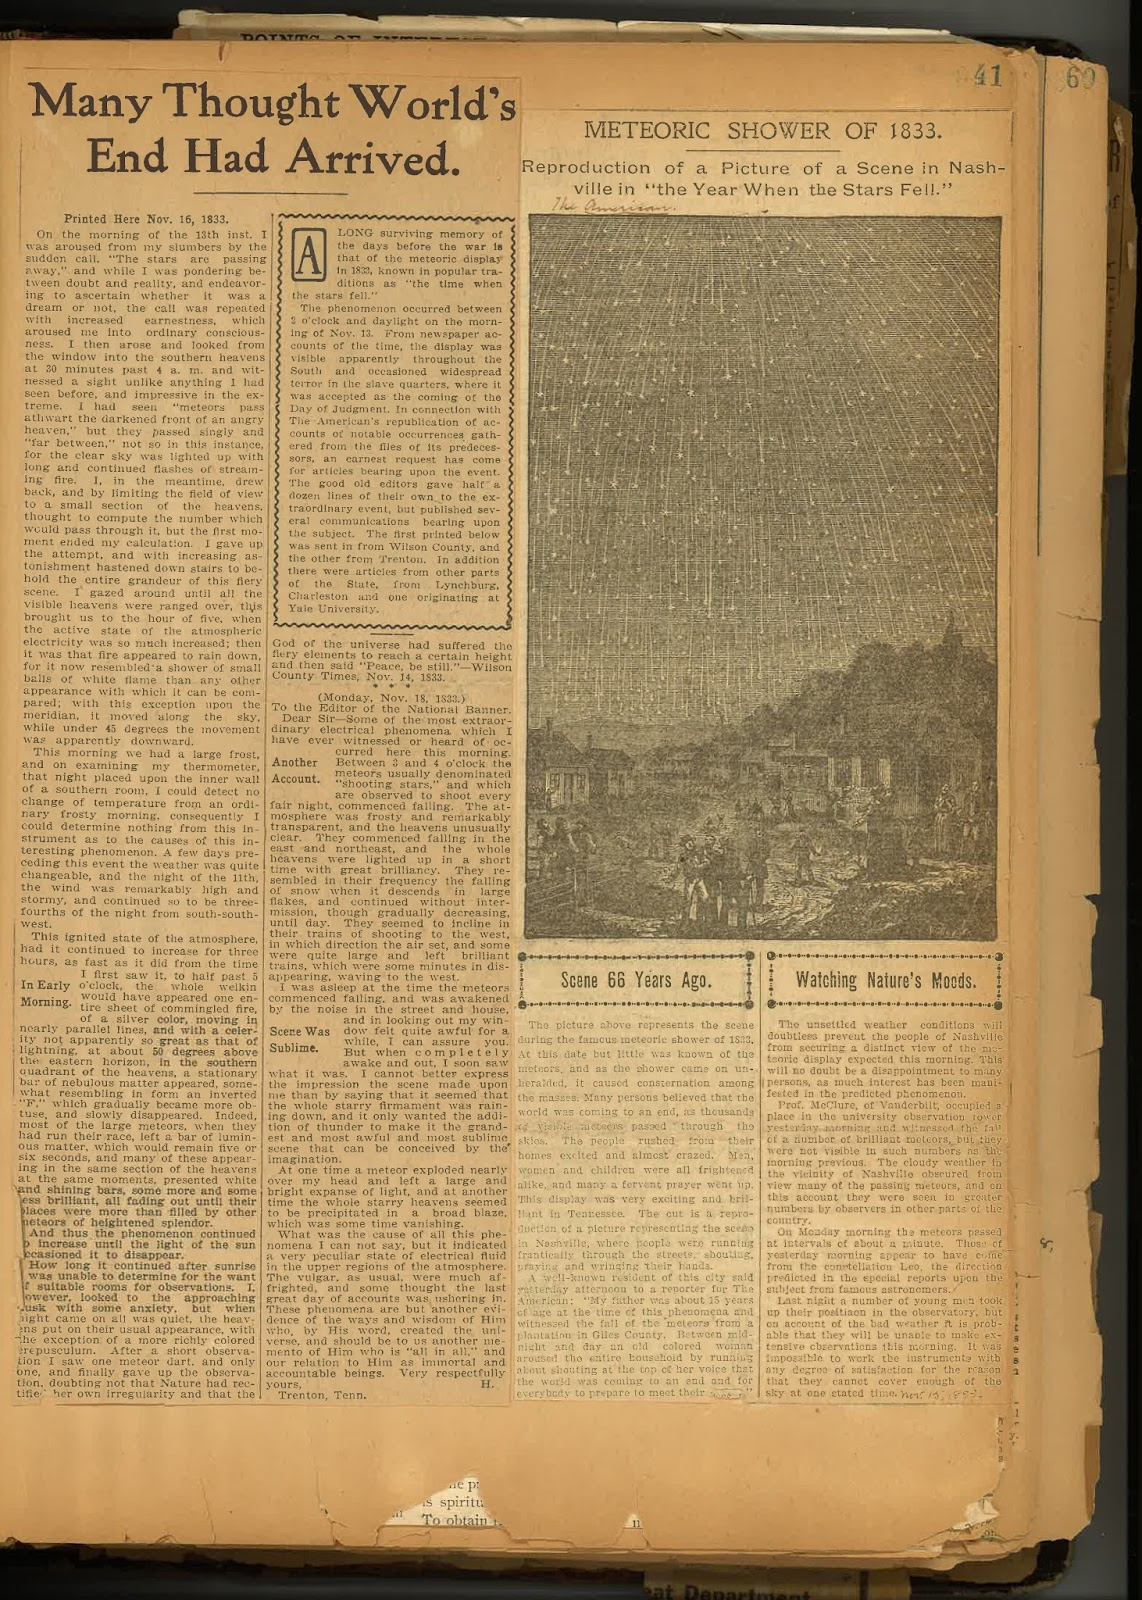 How to scrapbook newspaper clippings -  Many Persons Believed That The World Was Coming To An End As Thousands Of Visible Meteors Passed Through The Skies Unknown Newspaper Clipping